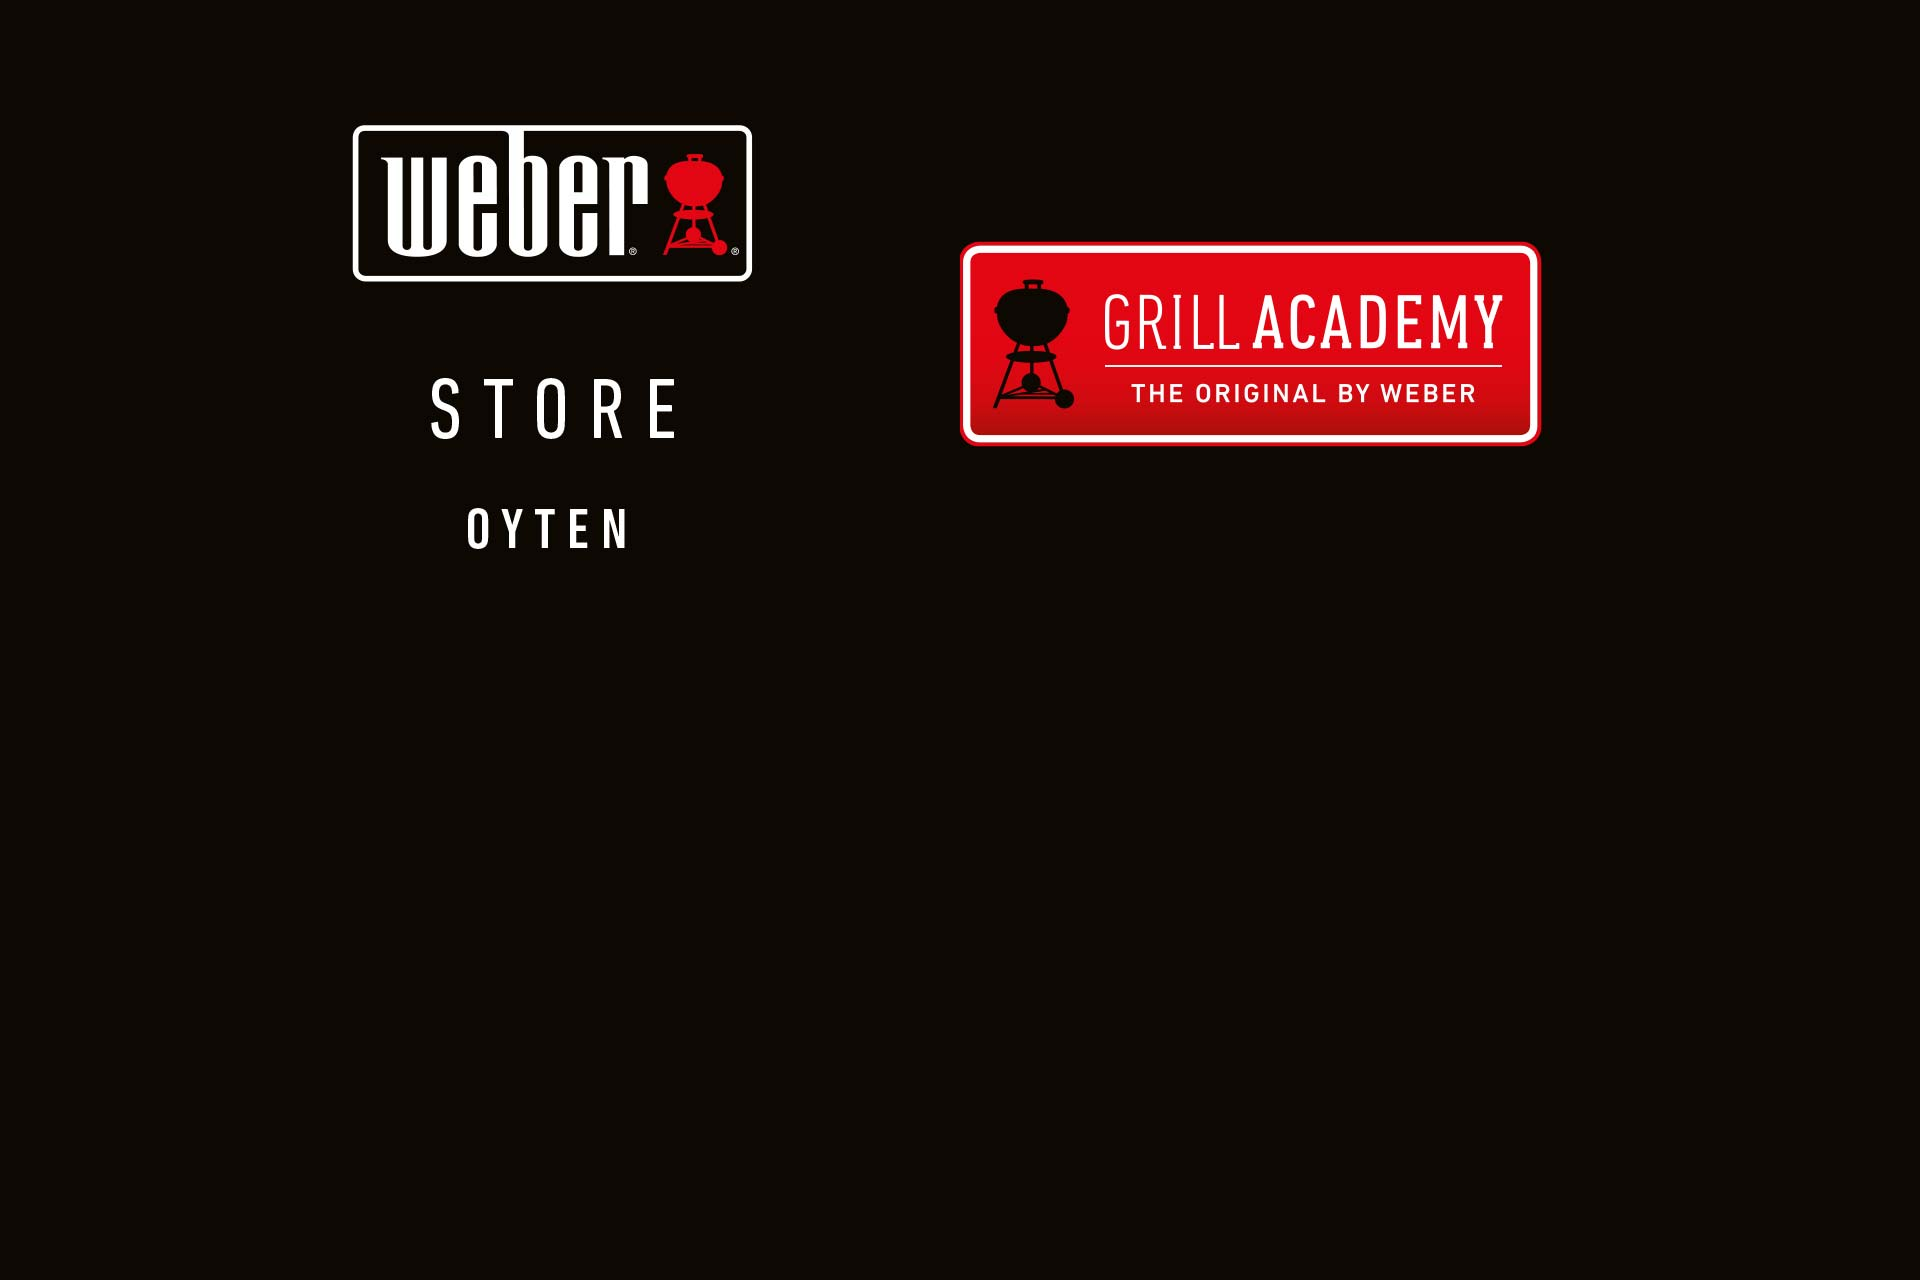 Weber-Store-Grill-Academy